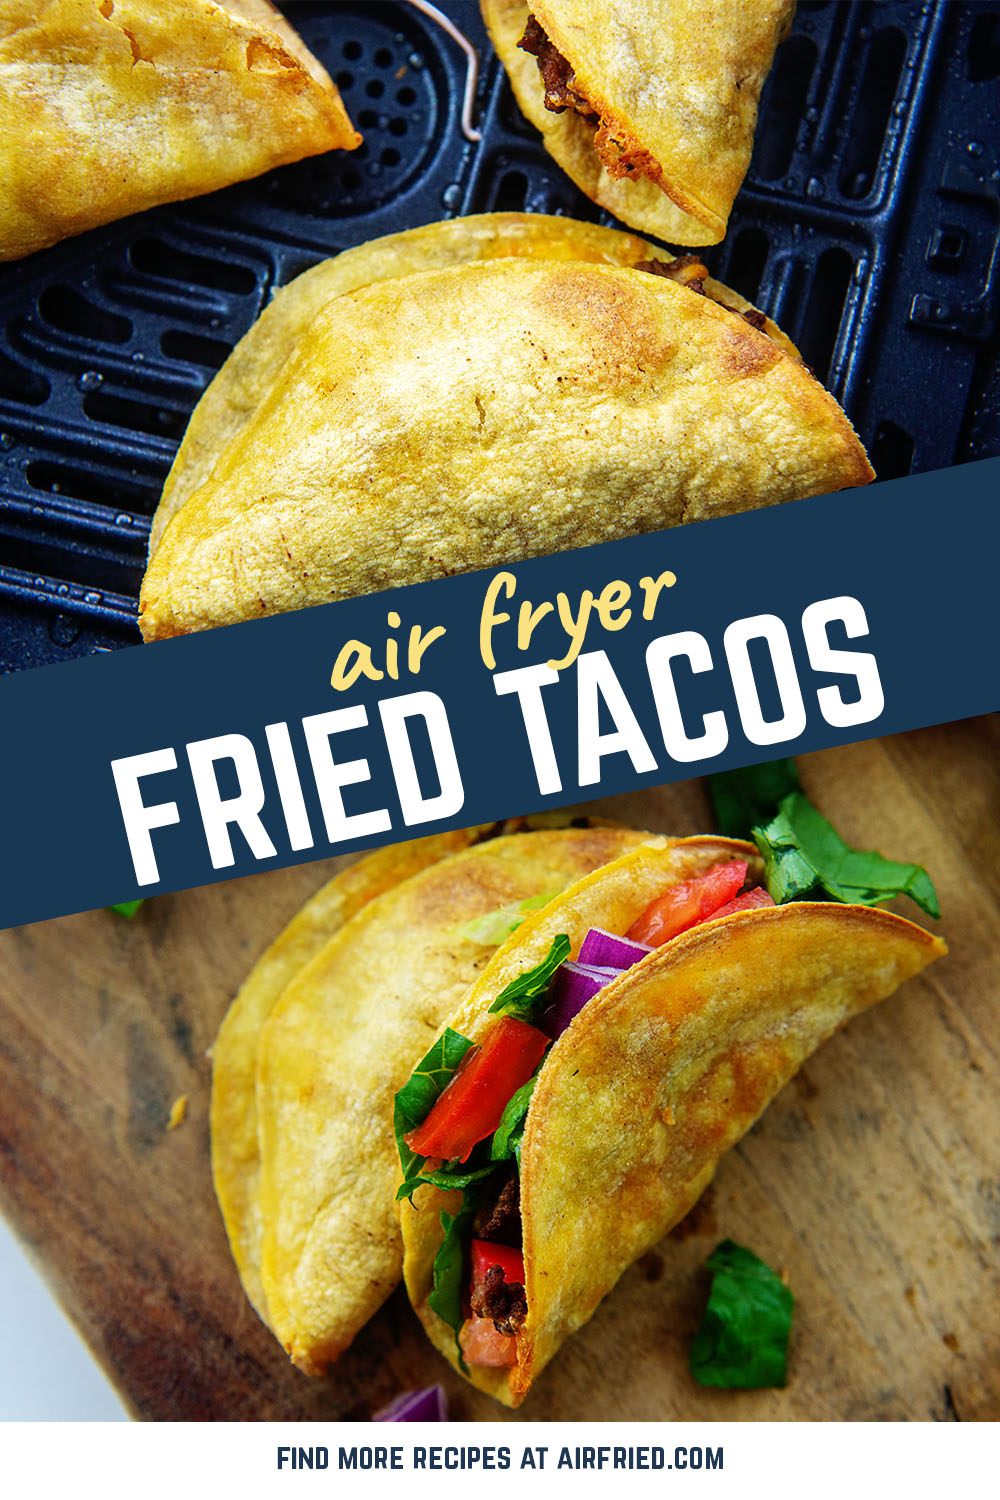 These air fryer fried tacos are much easier to make than a regular fried taco.  Healthier too!